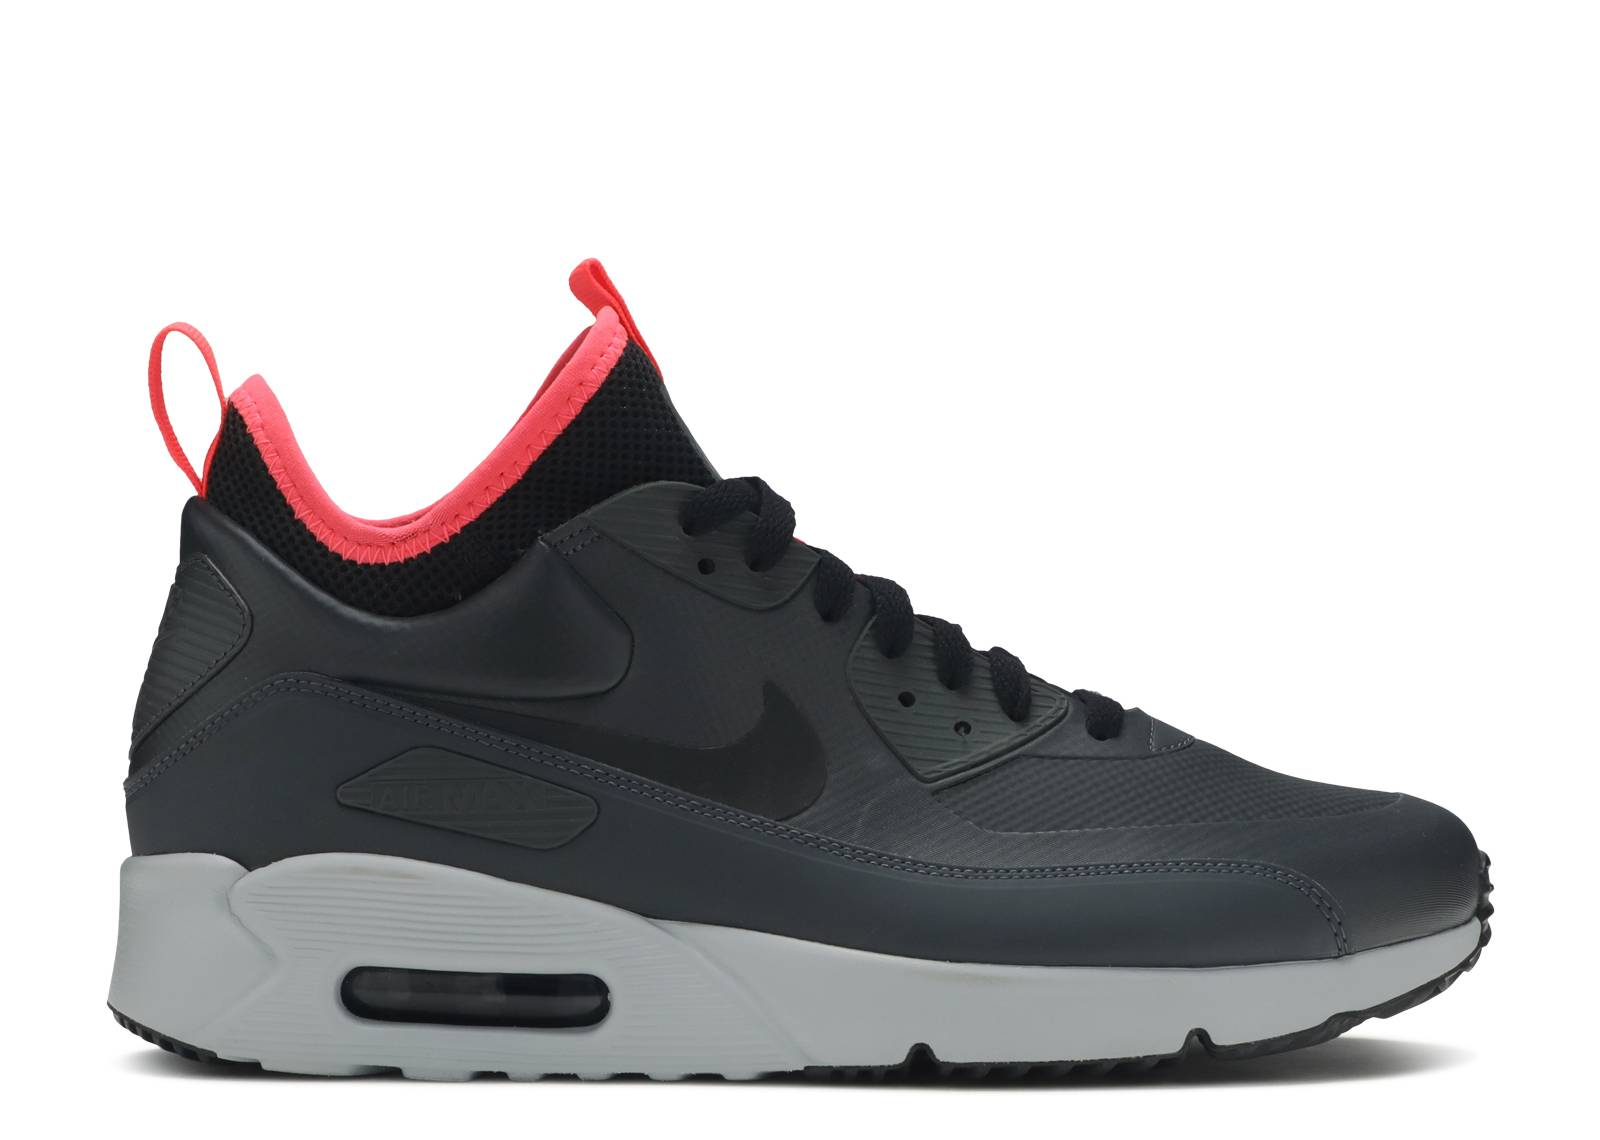 Air Max 90 Ultra Mid Winter 'Anthracite'